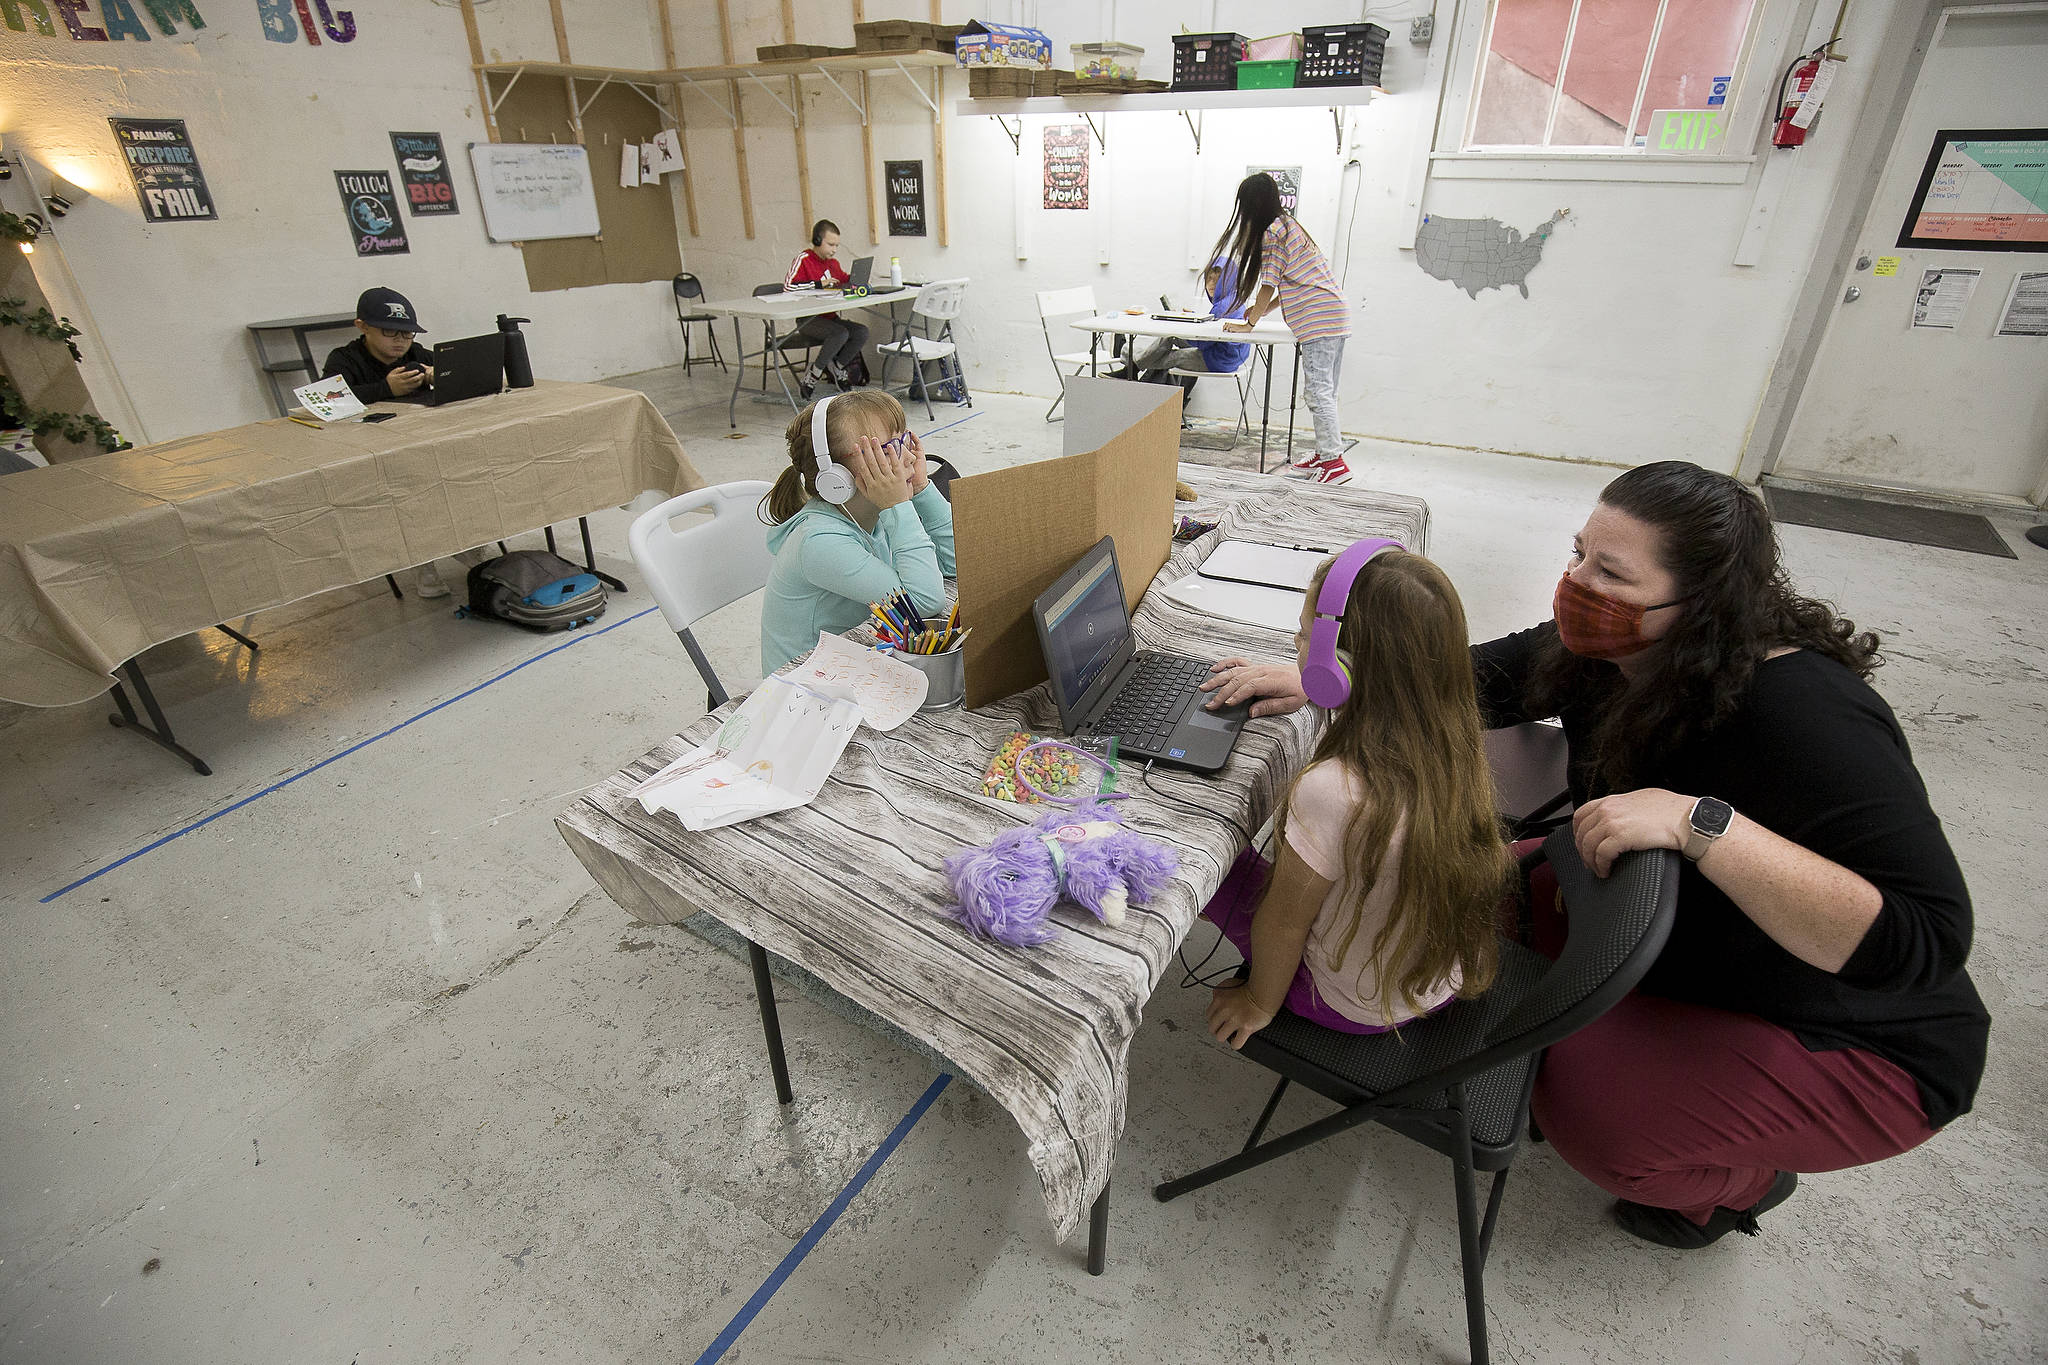 Teacher Shana Brown assists a student with a Zoom meeting while overseeing employees' children engaged in virtual learning in the former warehouse space at the Malicious Women Co. candle shop in Snohomish. (Andy Bronson / The Herald)